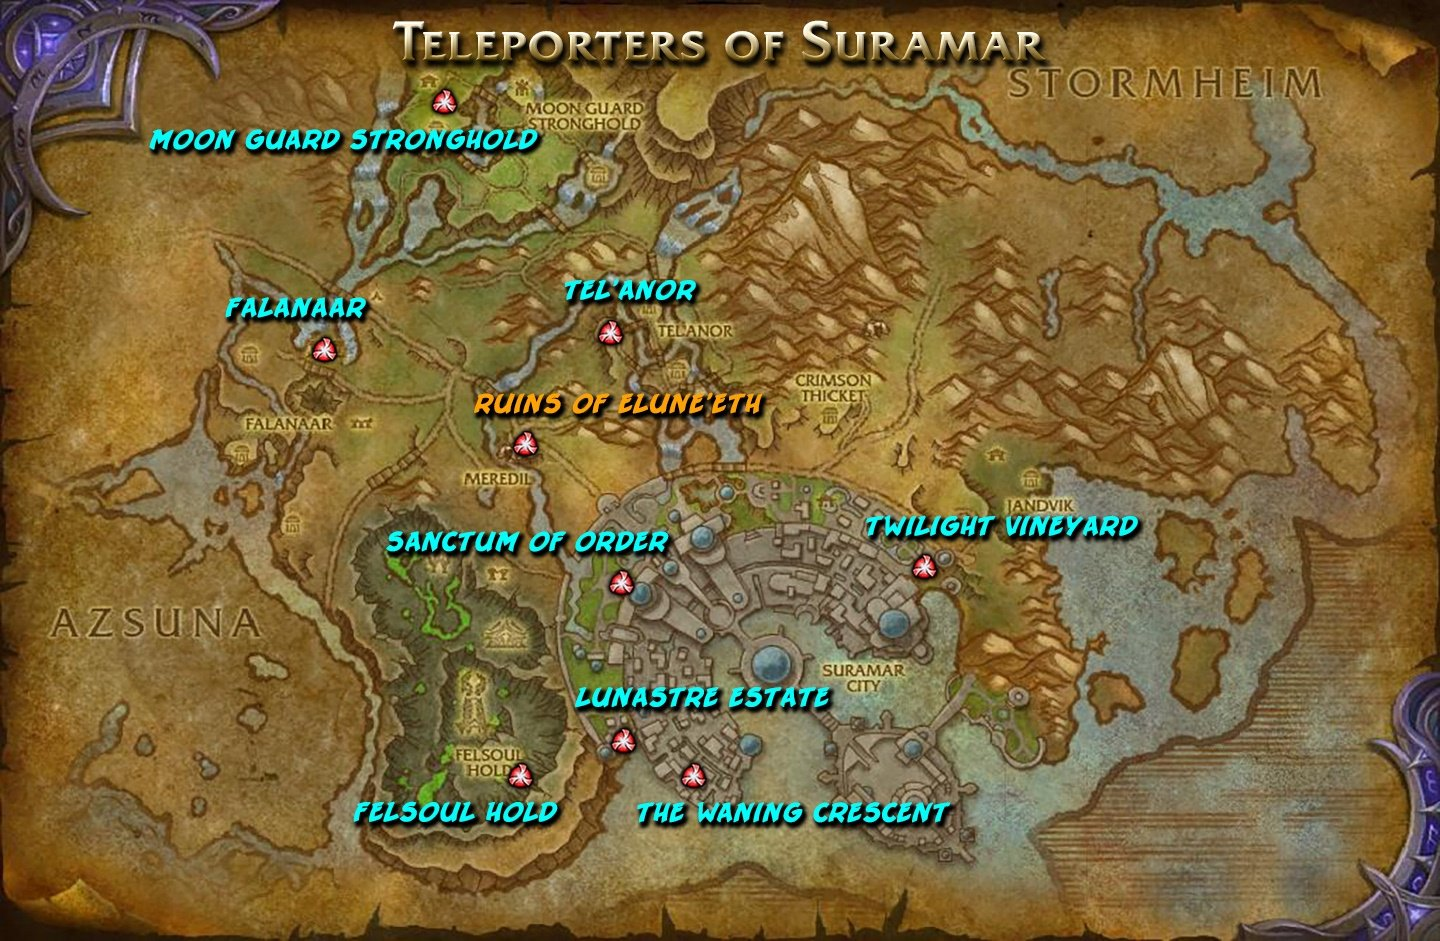 Reckles On Twitter Quot Useful Map Of Suramar Teleporters